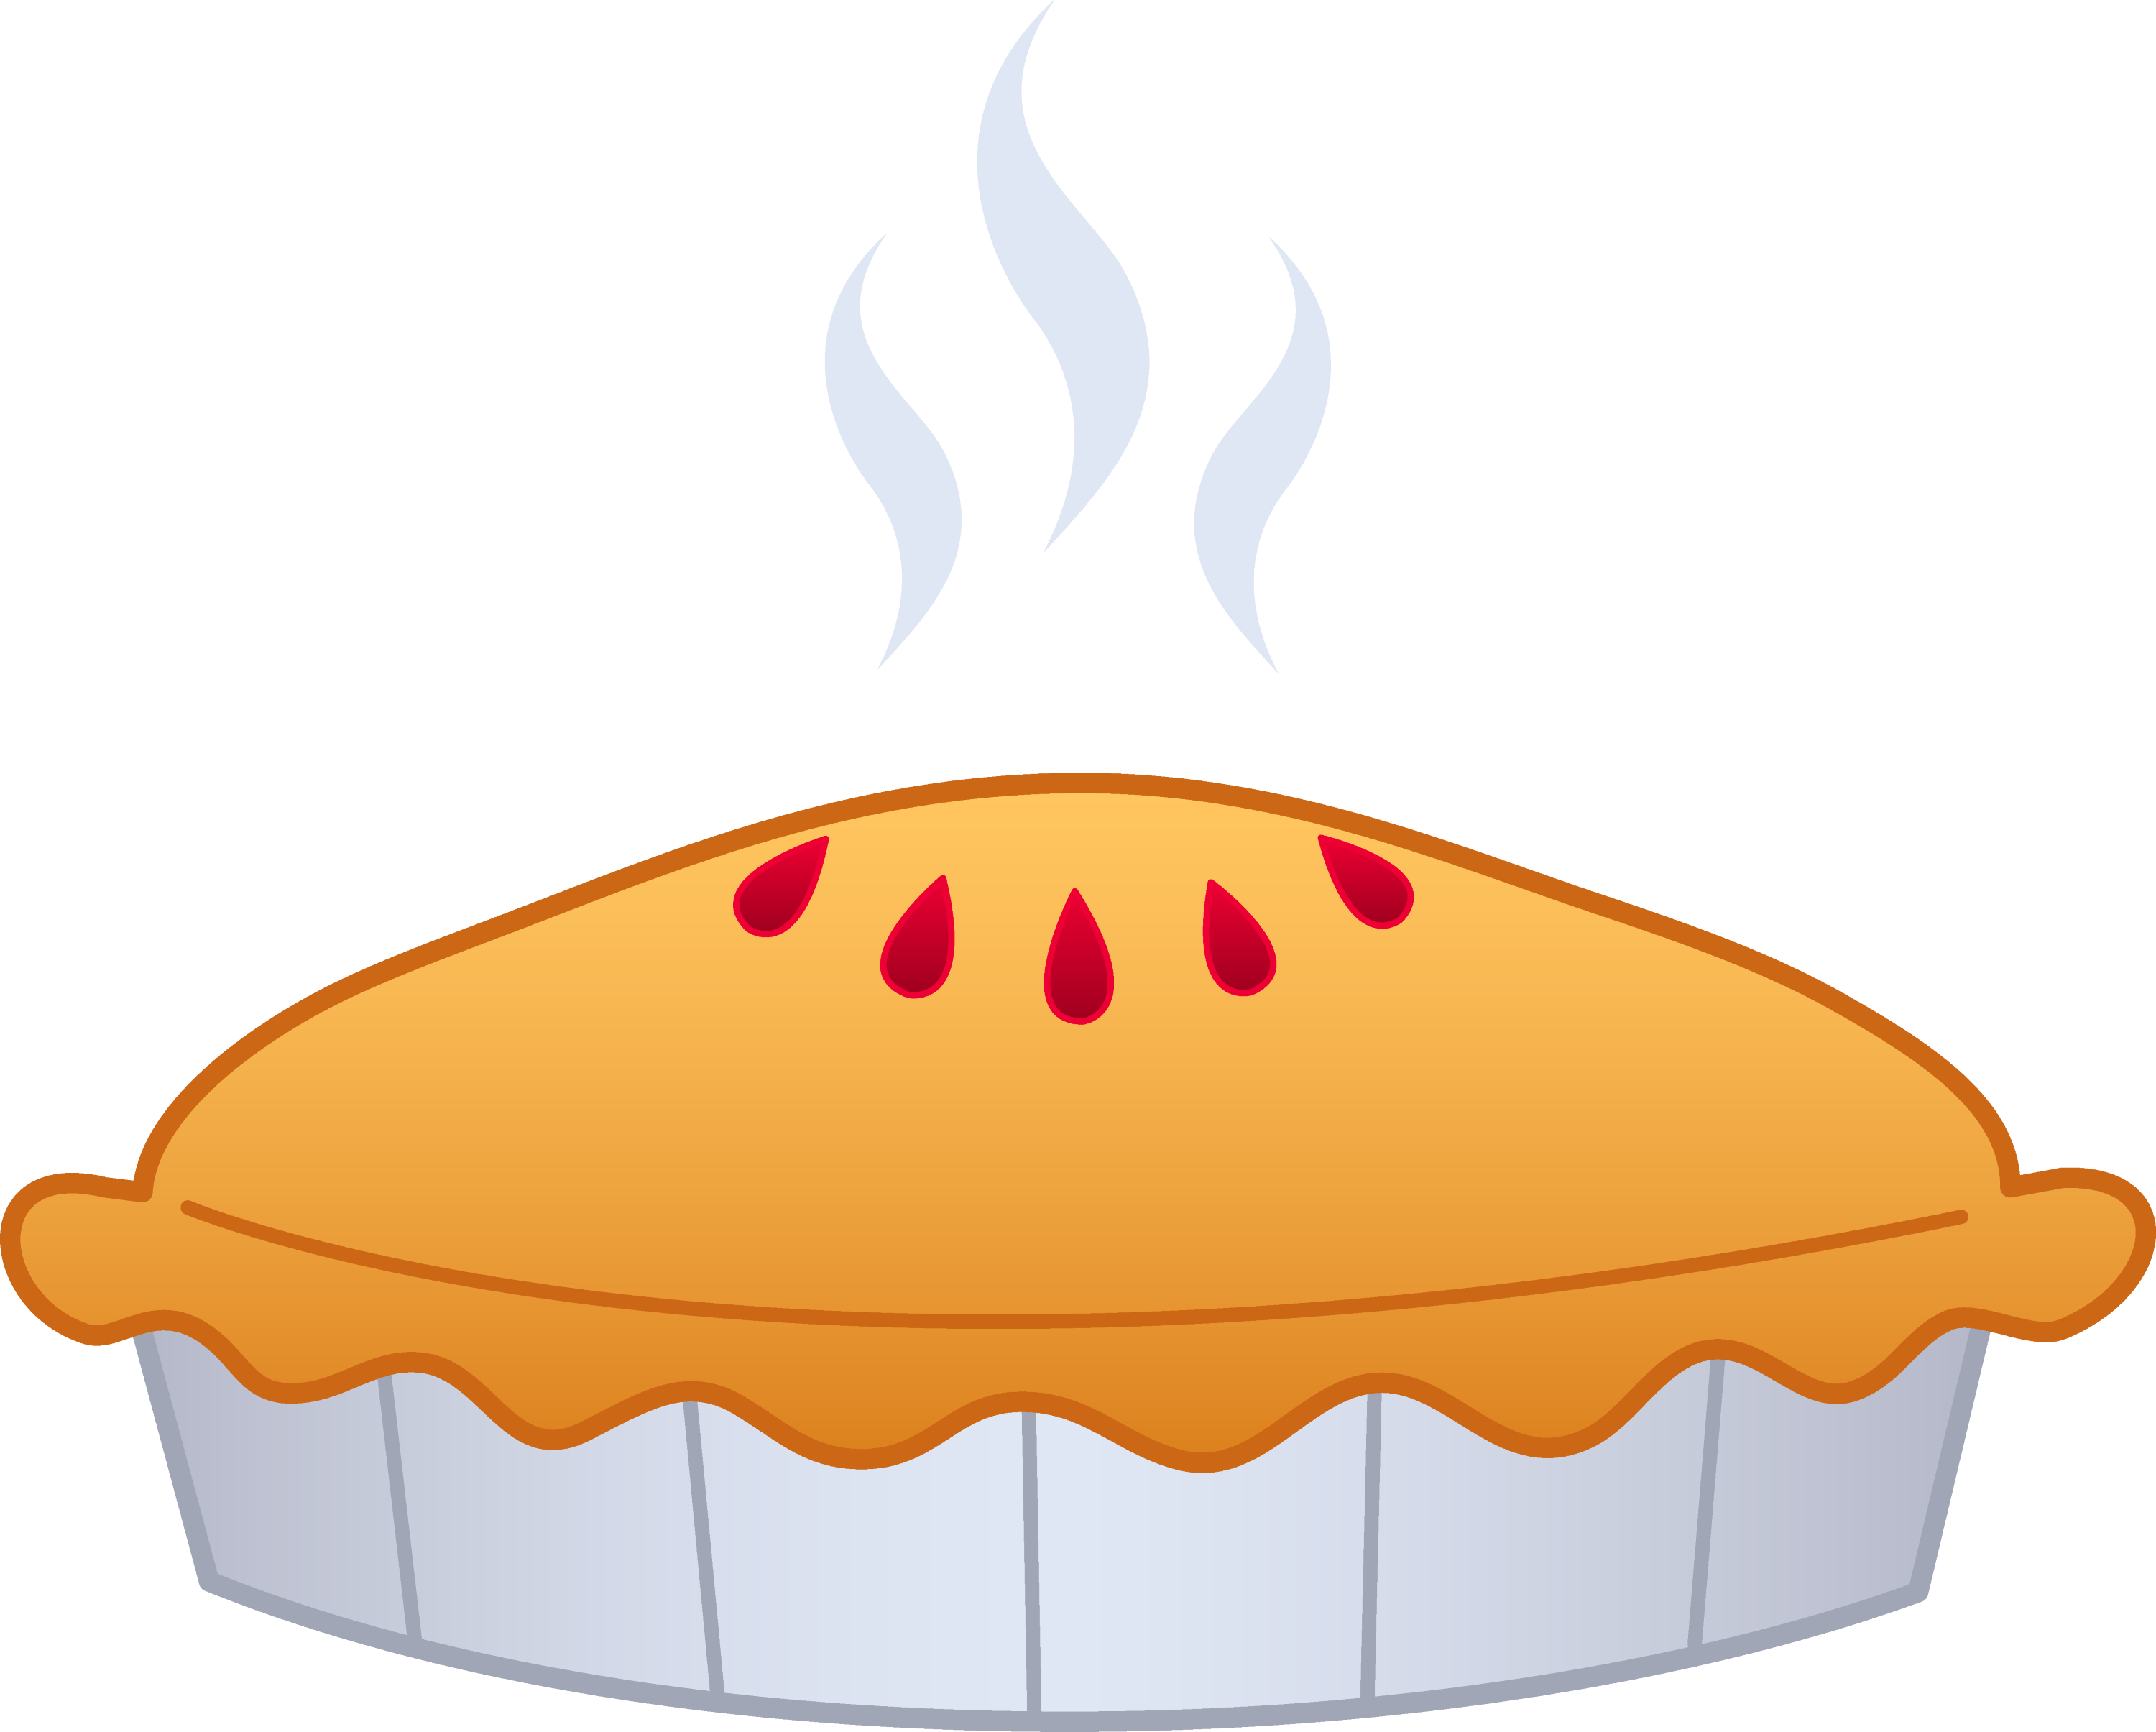 Clipart Cakes And Pies : Delicious Pie Clip Art - Free Clip Art